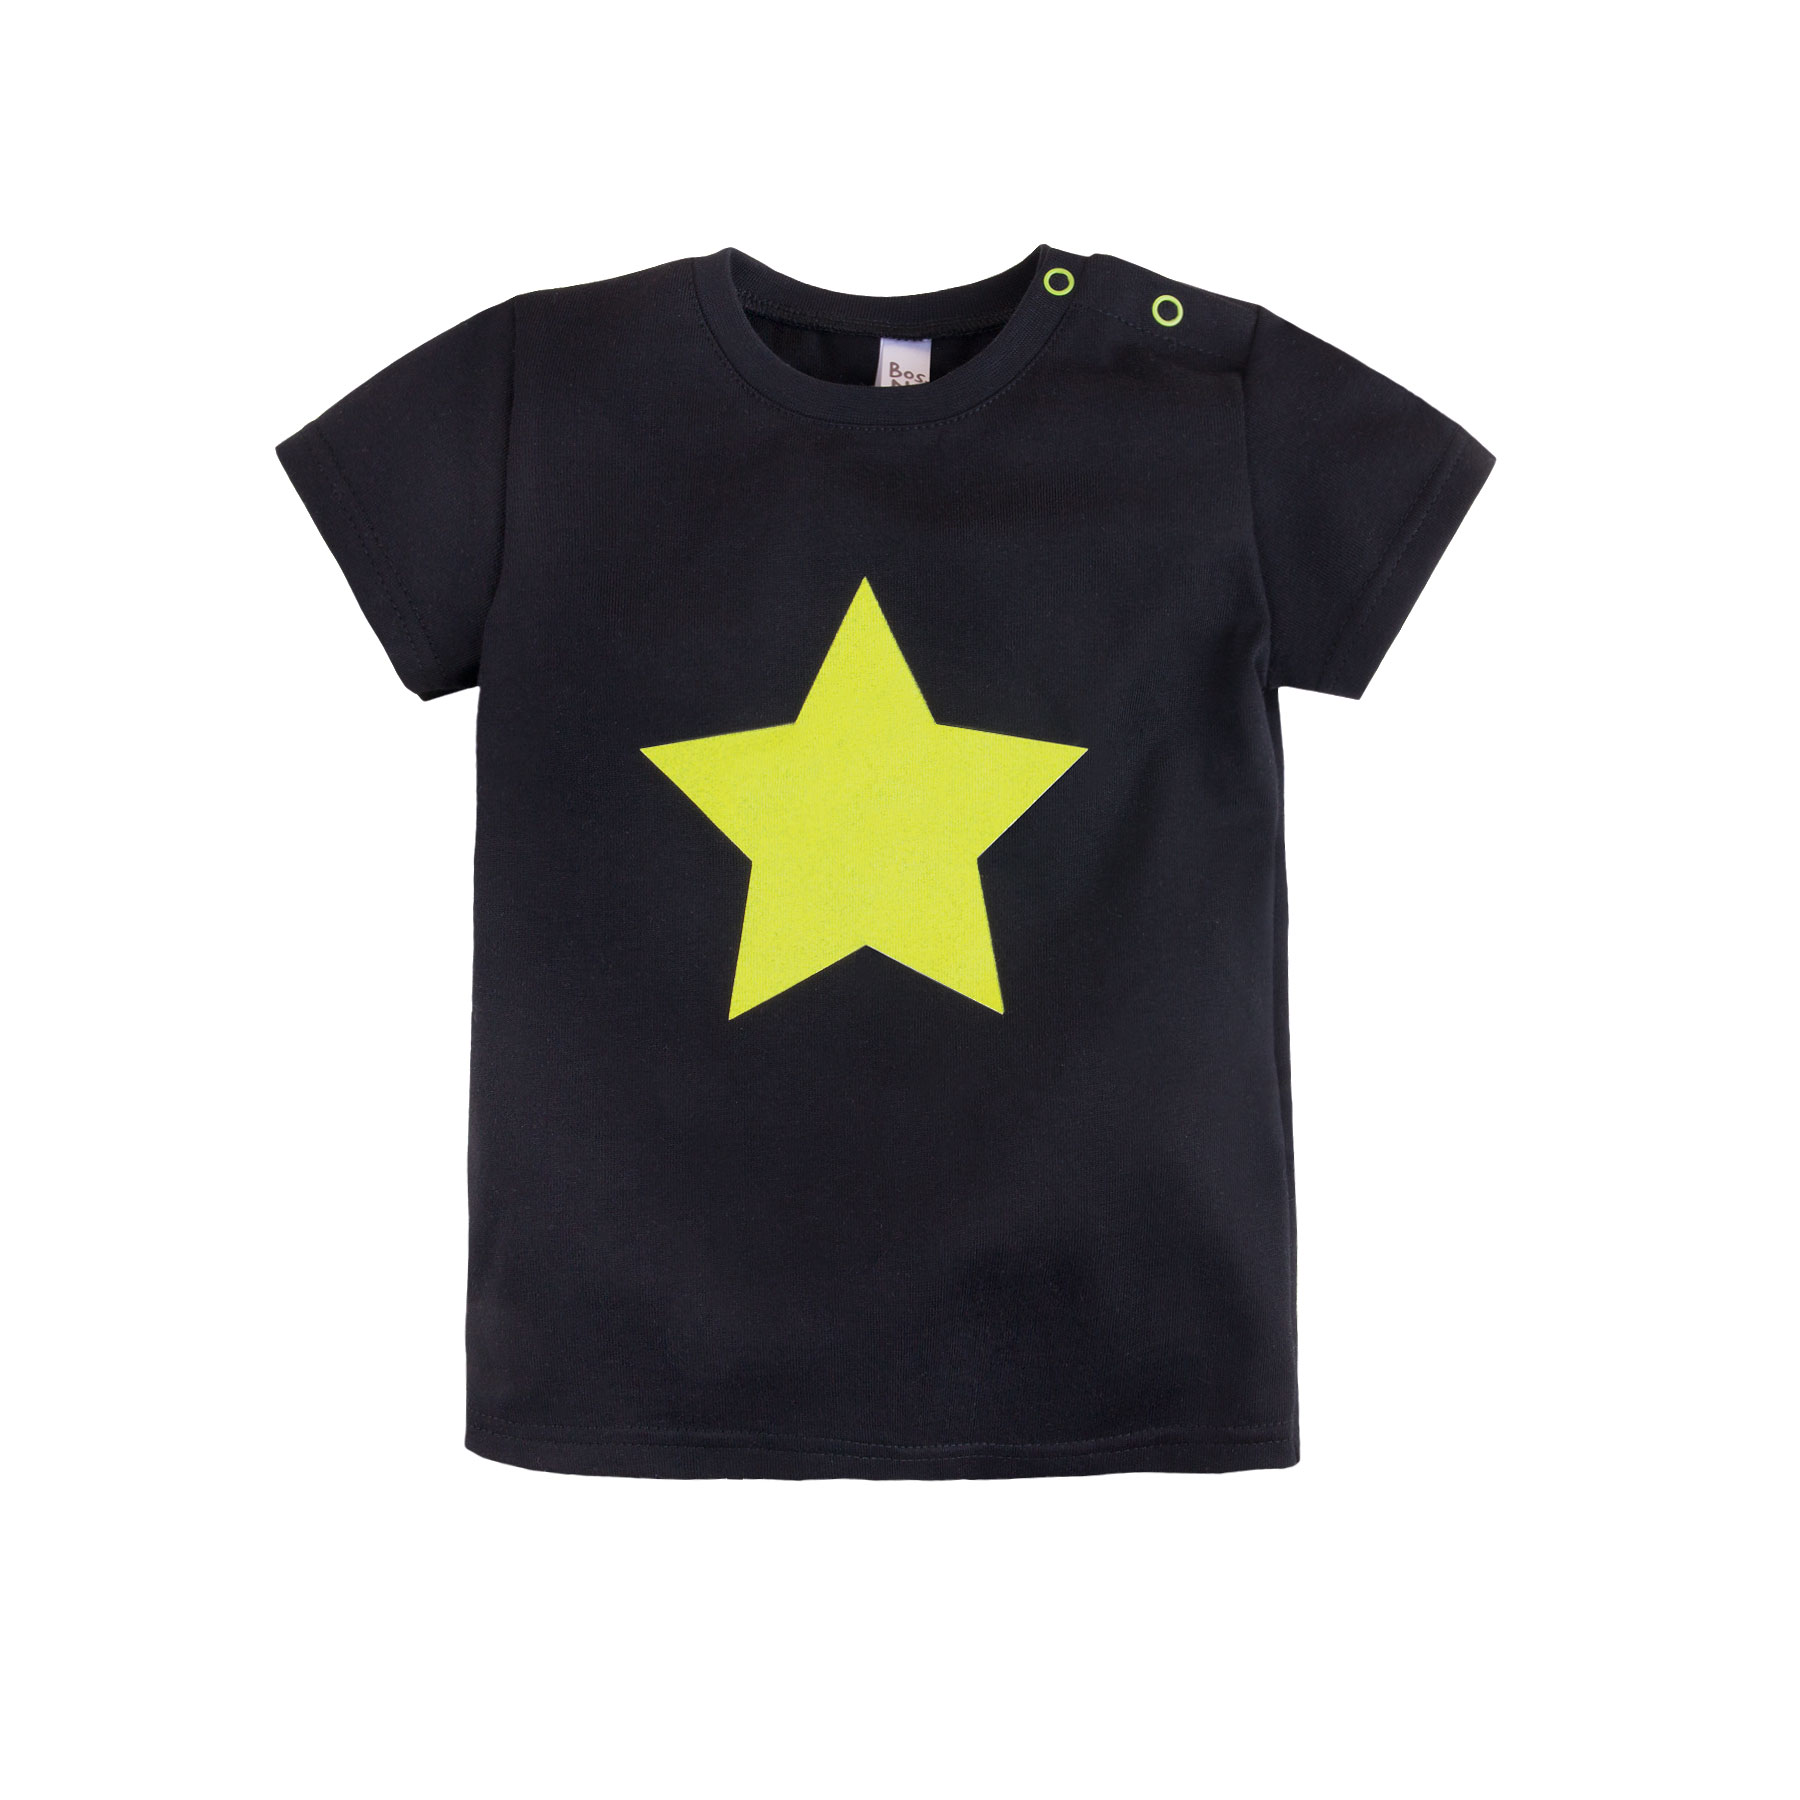 T Shirt for Boy's Tetris' Bossa Nova 259B-161h цена